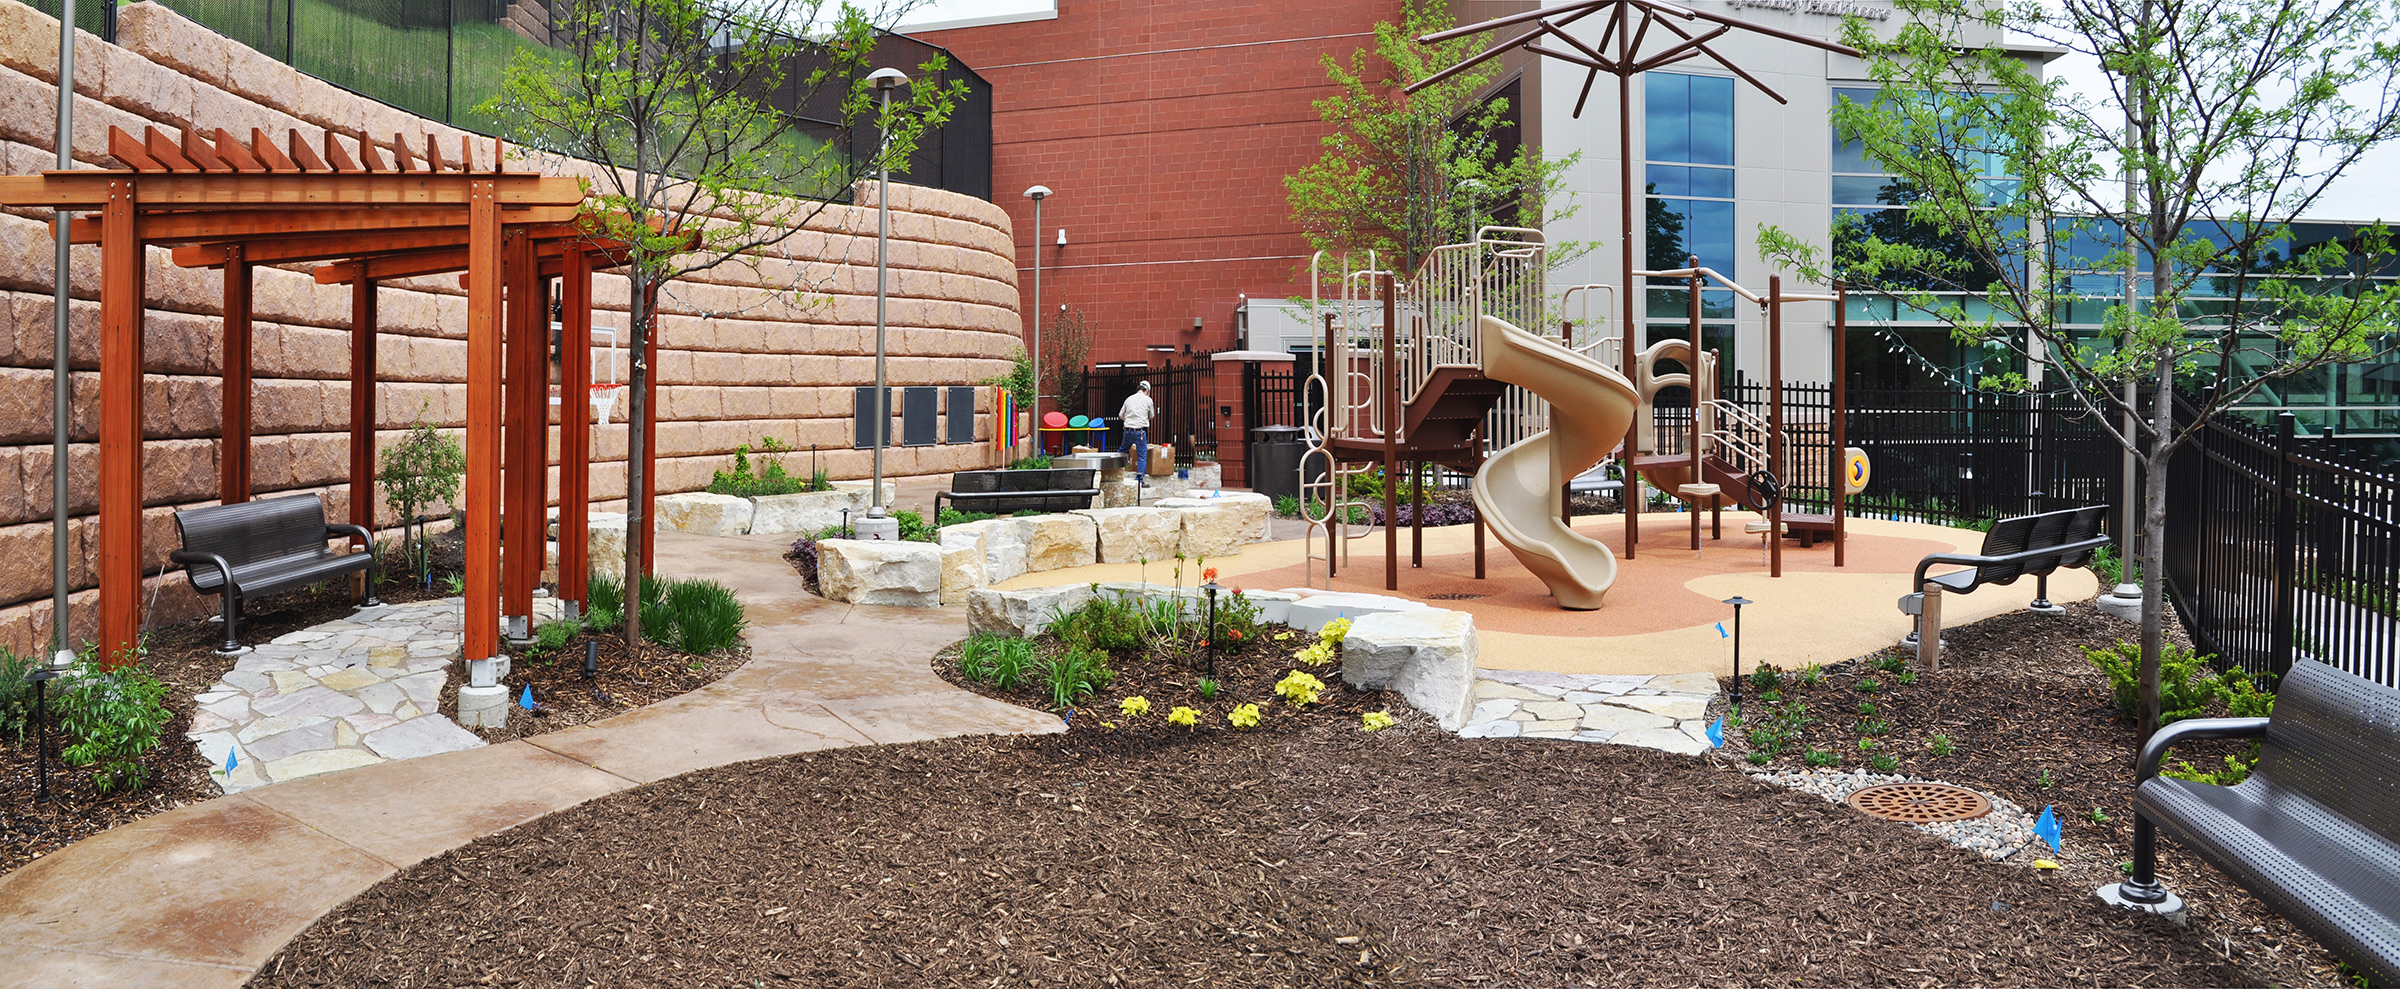 Gillette Children's Specialty Healthcare Therapy Garden